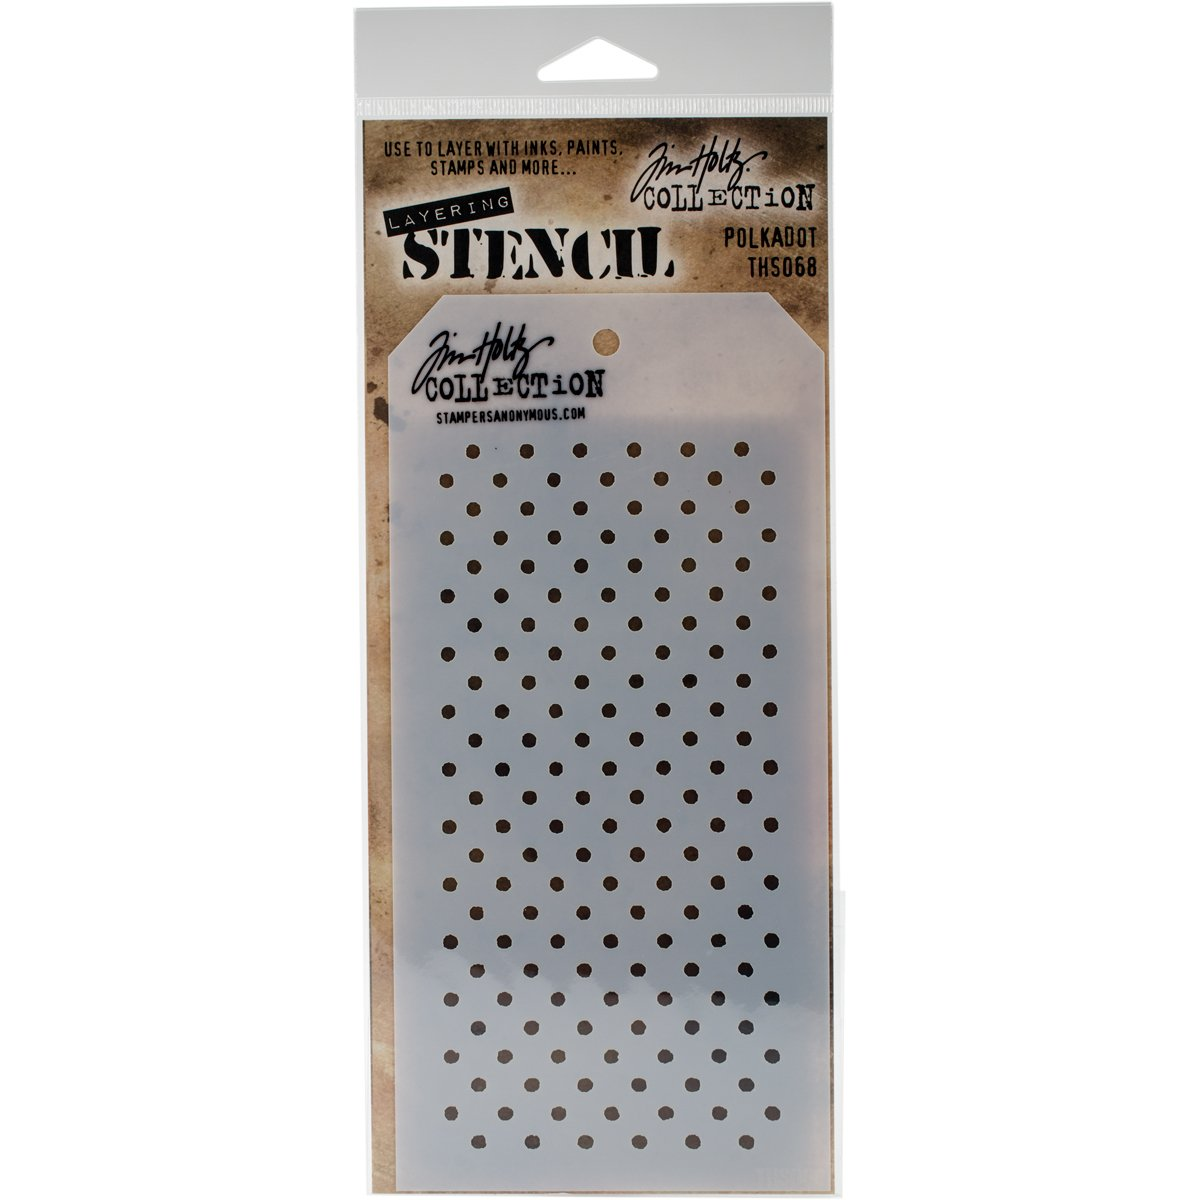 Stampers Anonymous/_agw Tim Holtz-Stencil Motivo Pizzo